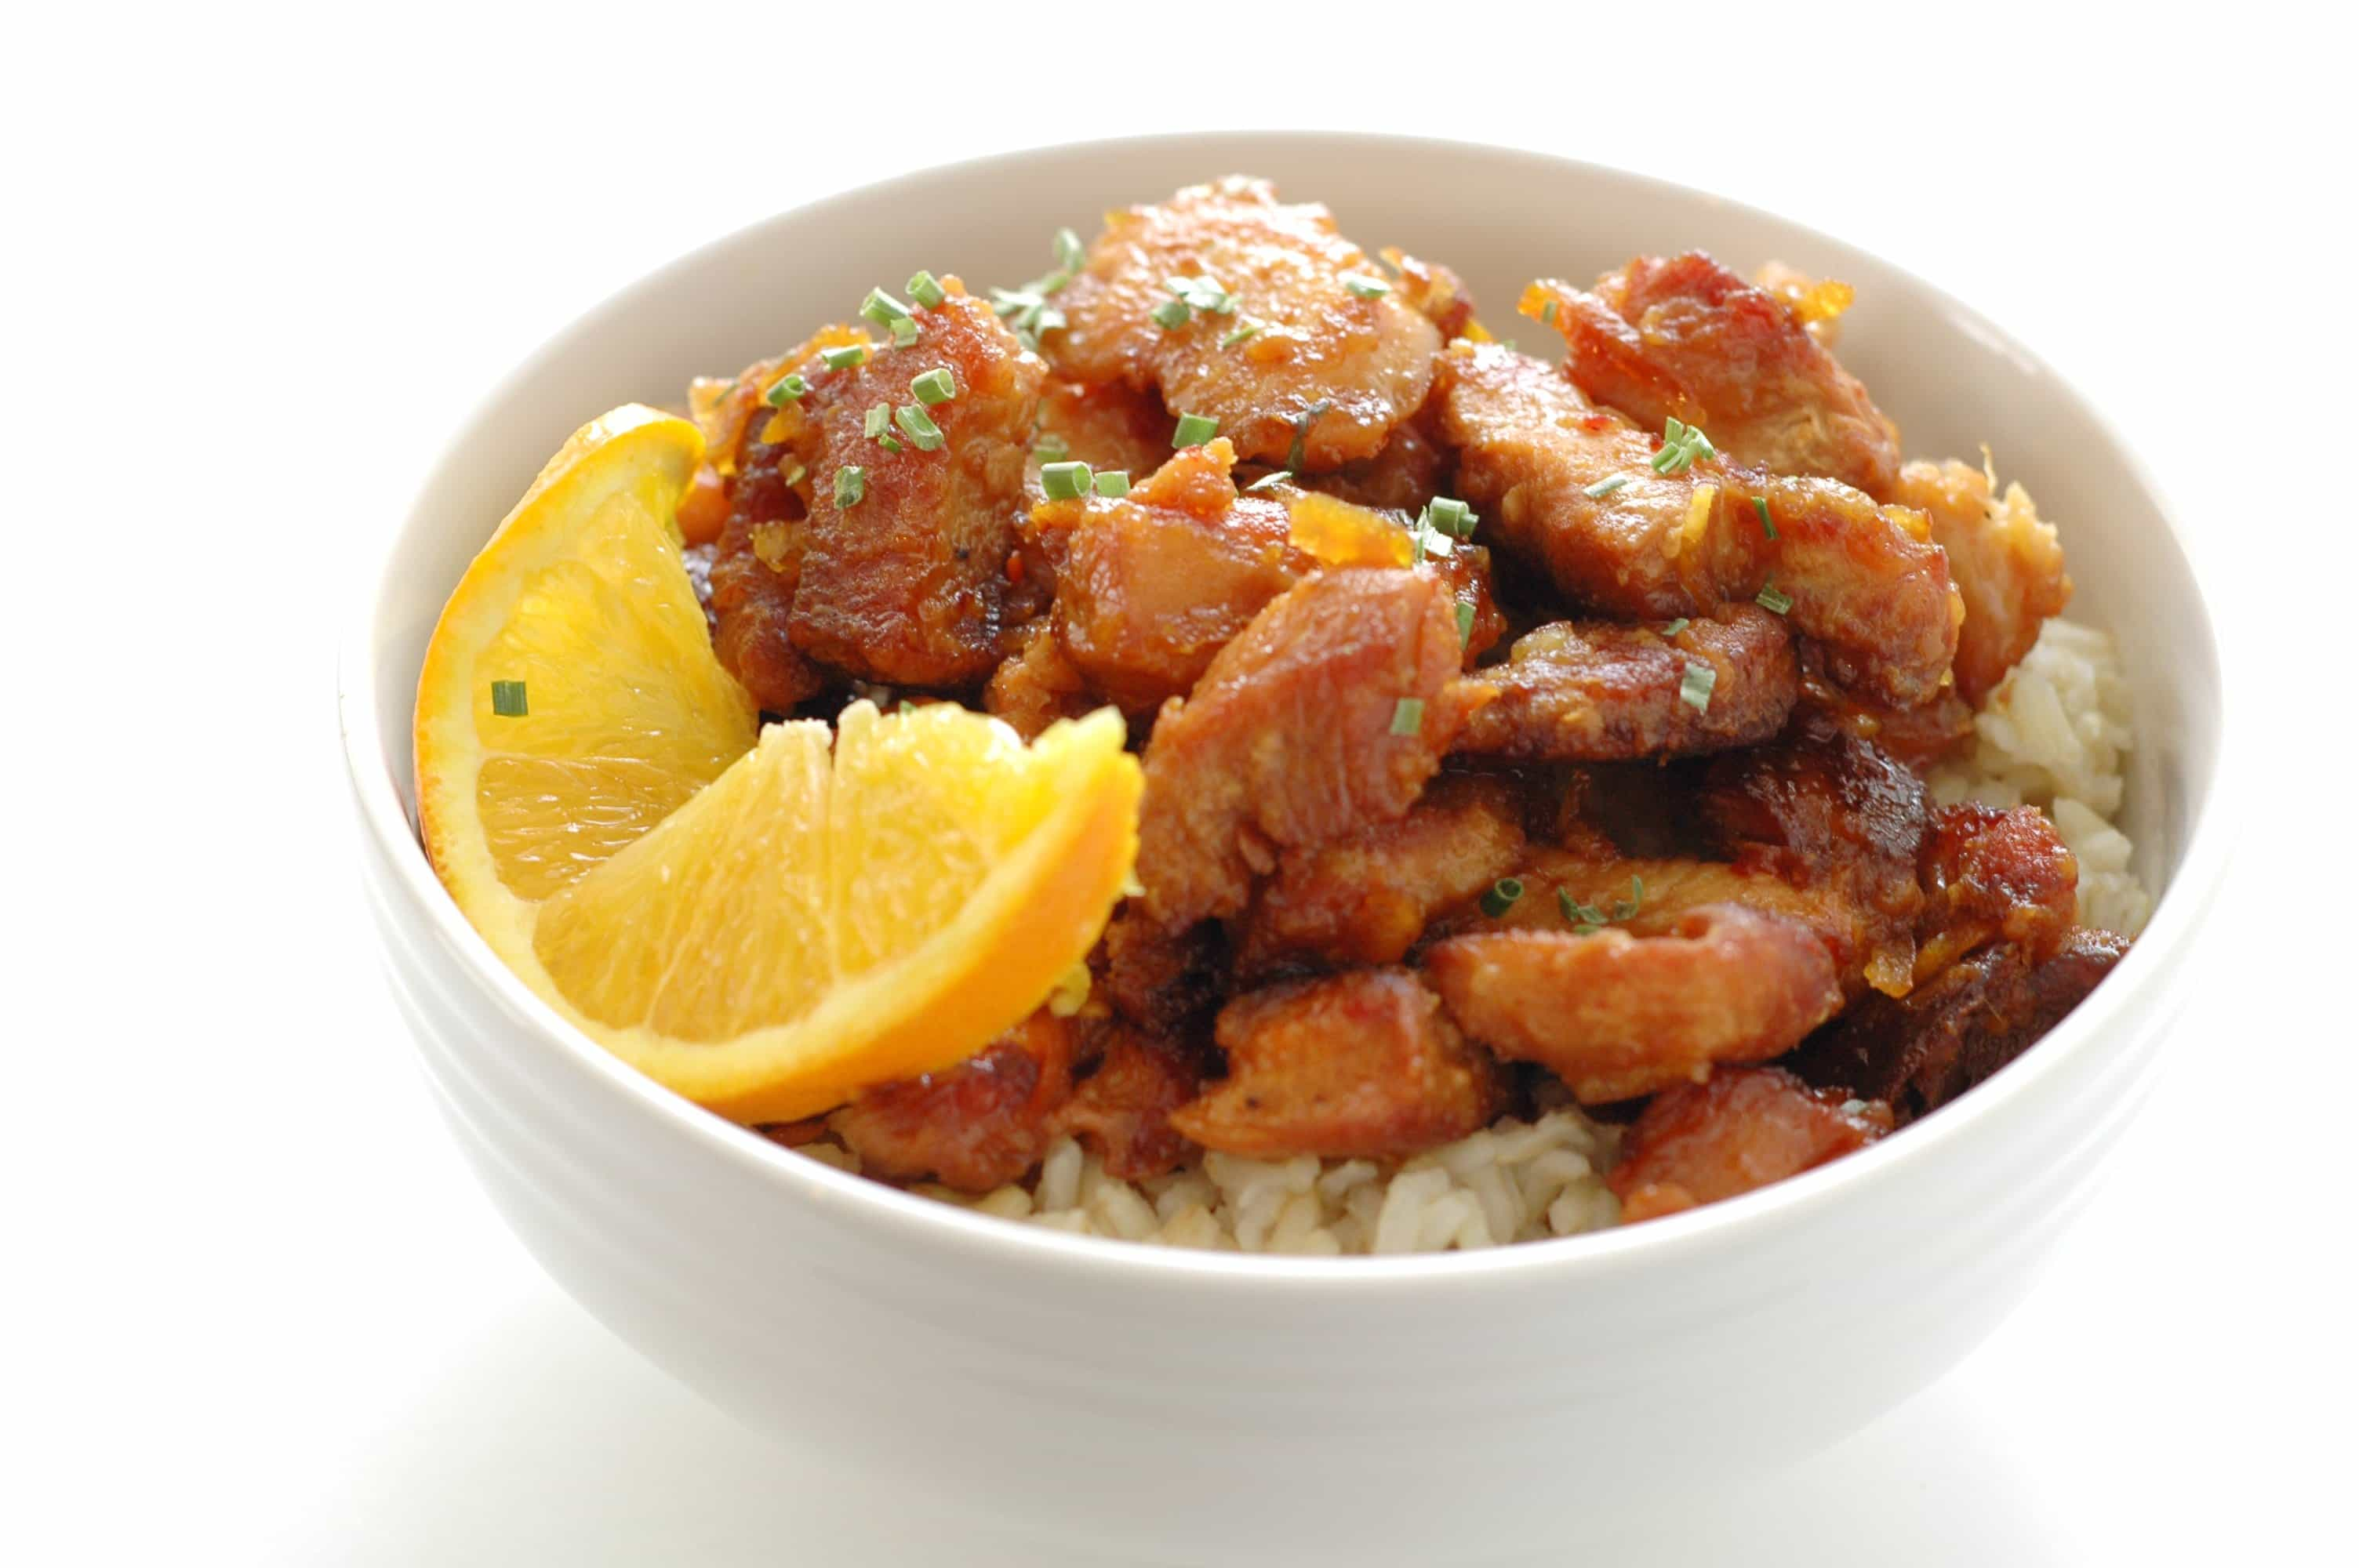 side view of white bowl with orange chicken on bed of rice with slice of orange